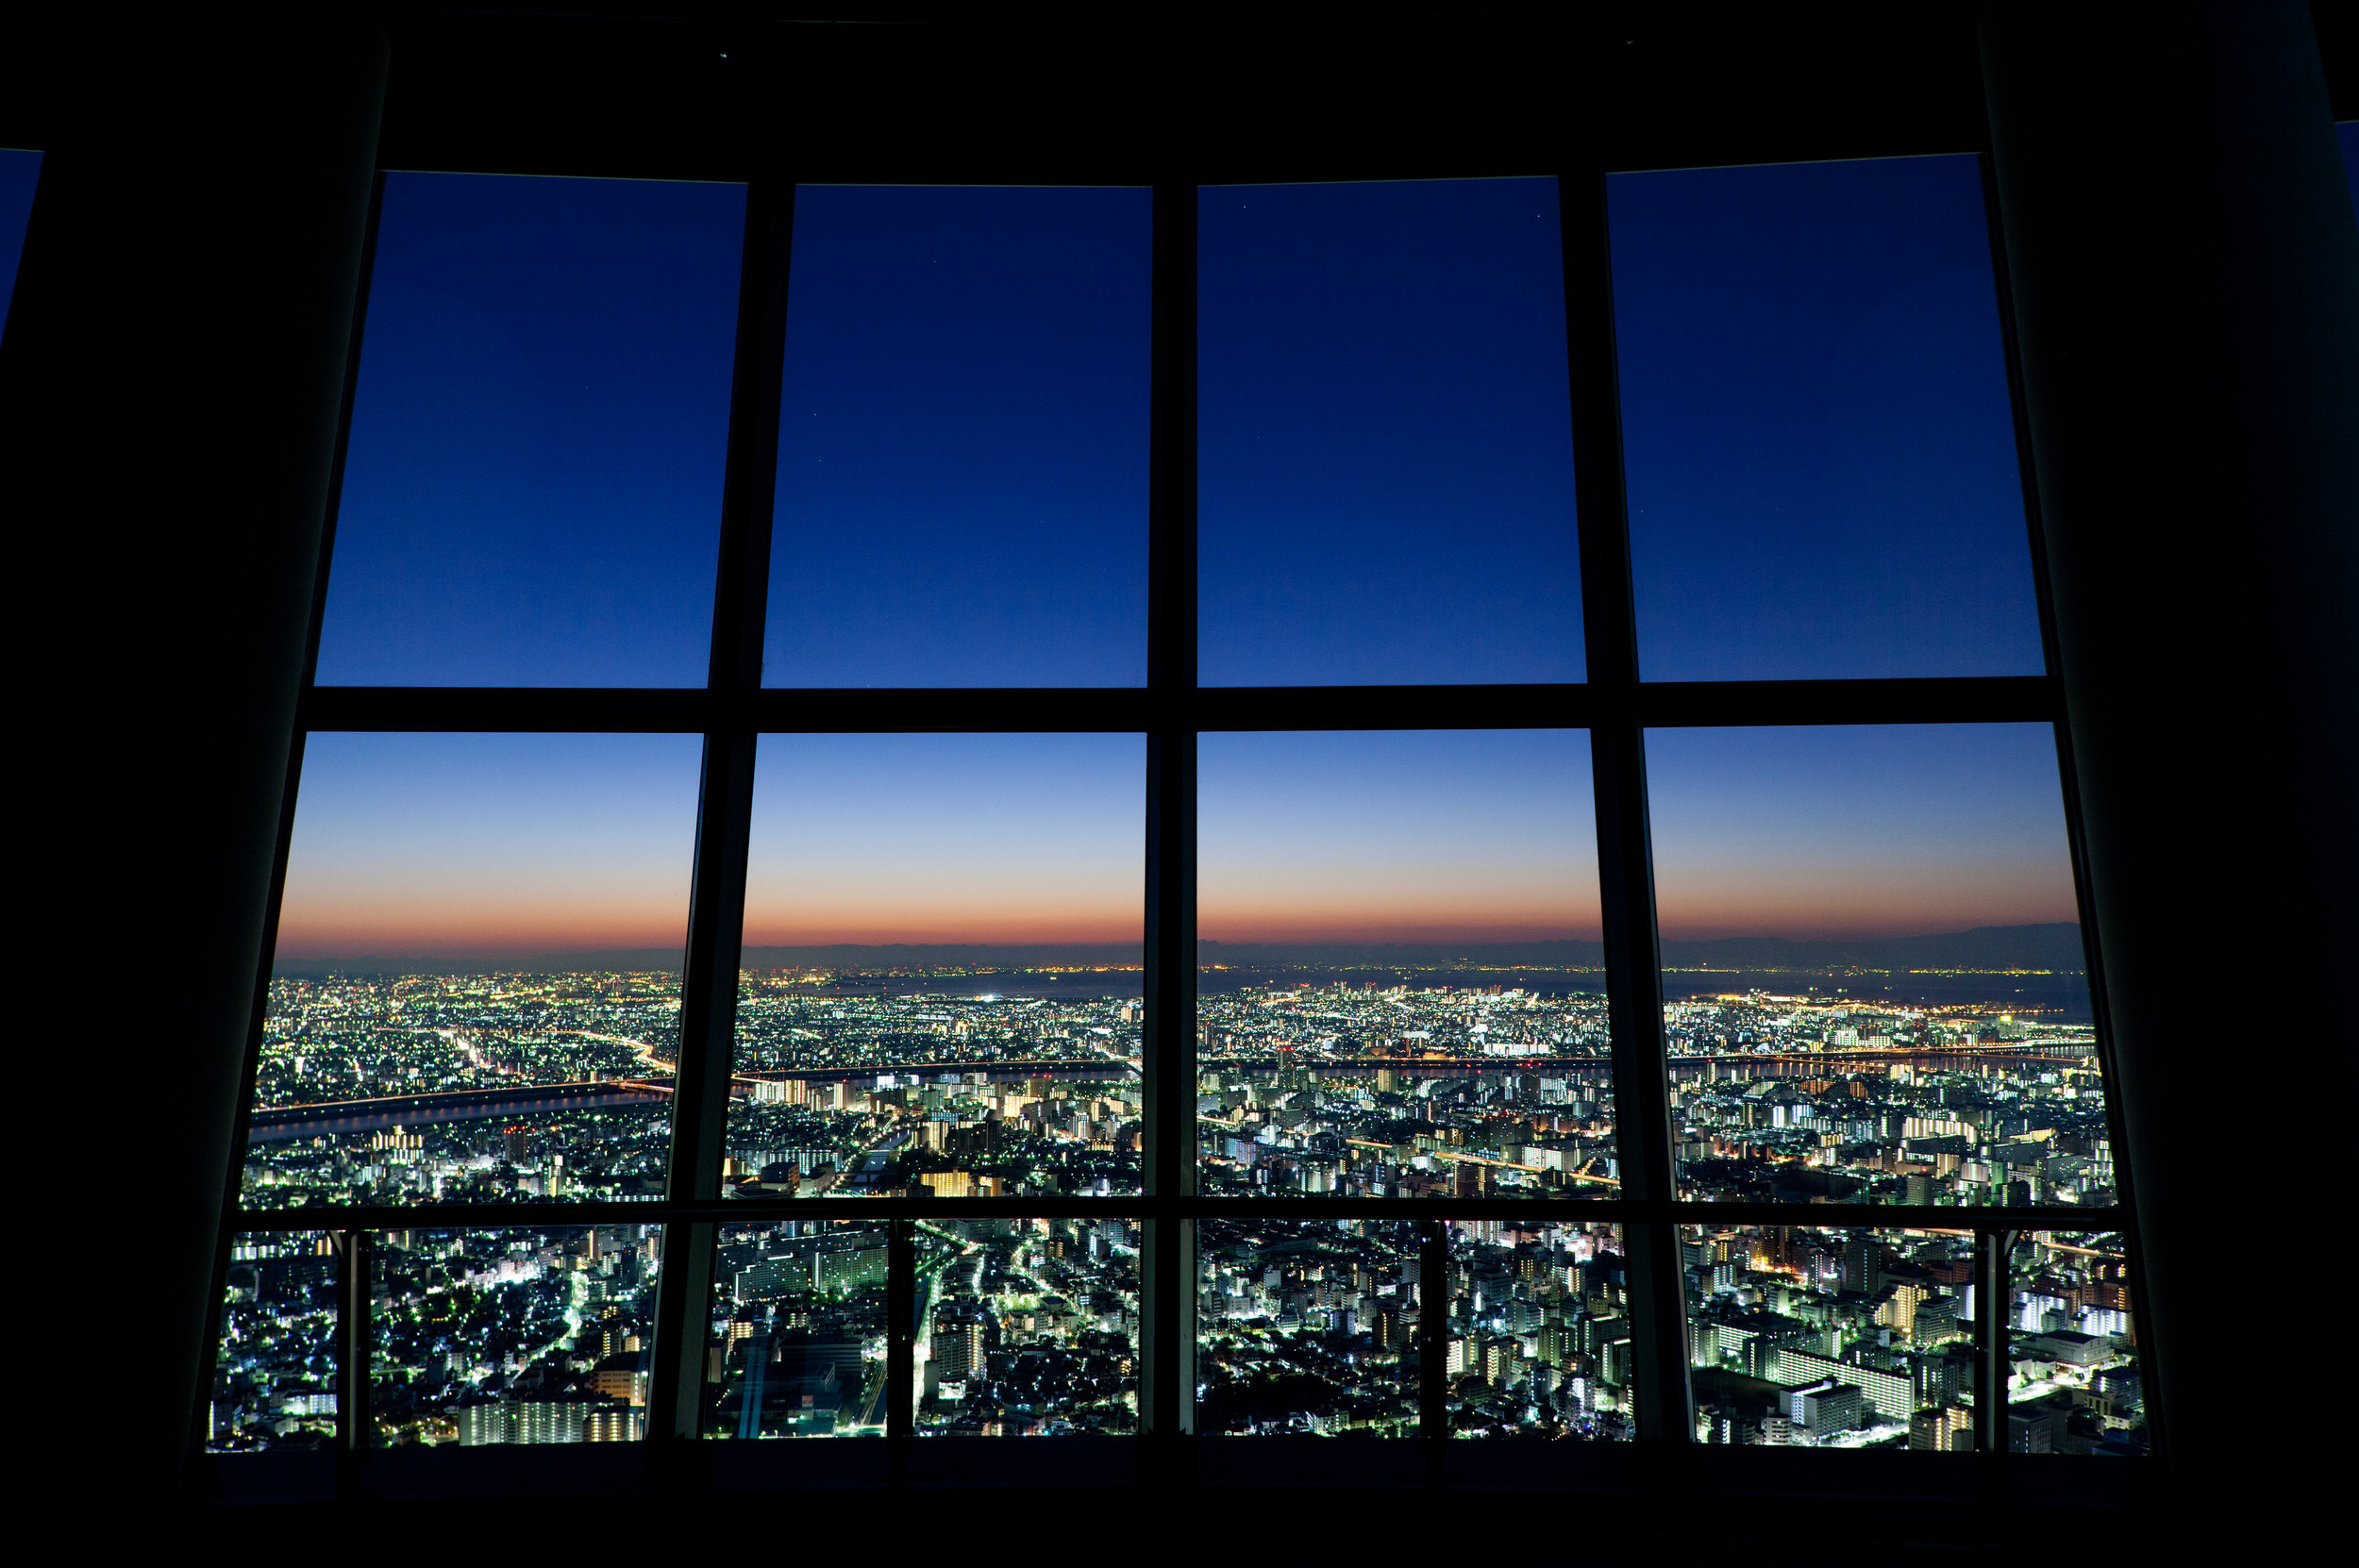 Want to learn more about this guide and join our community? - Sign up for our Tokyo guide series.